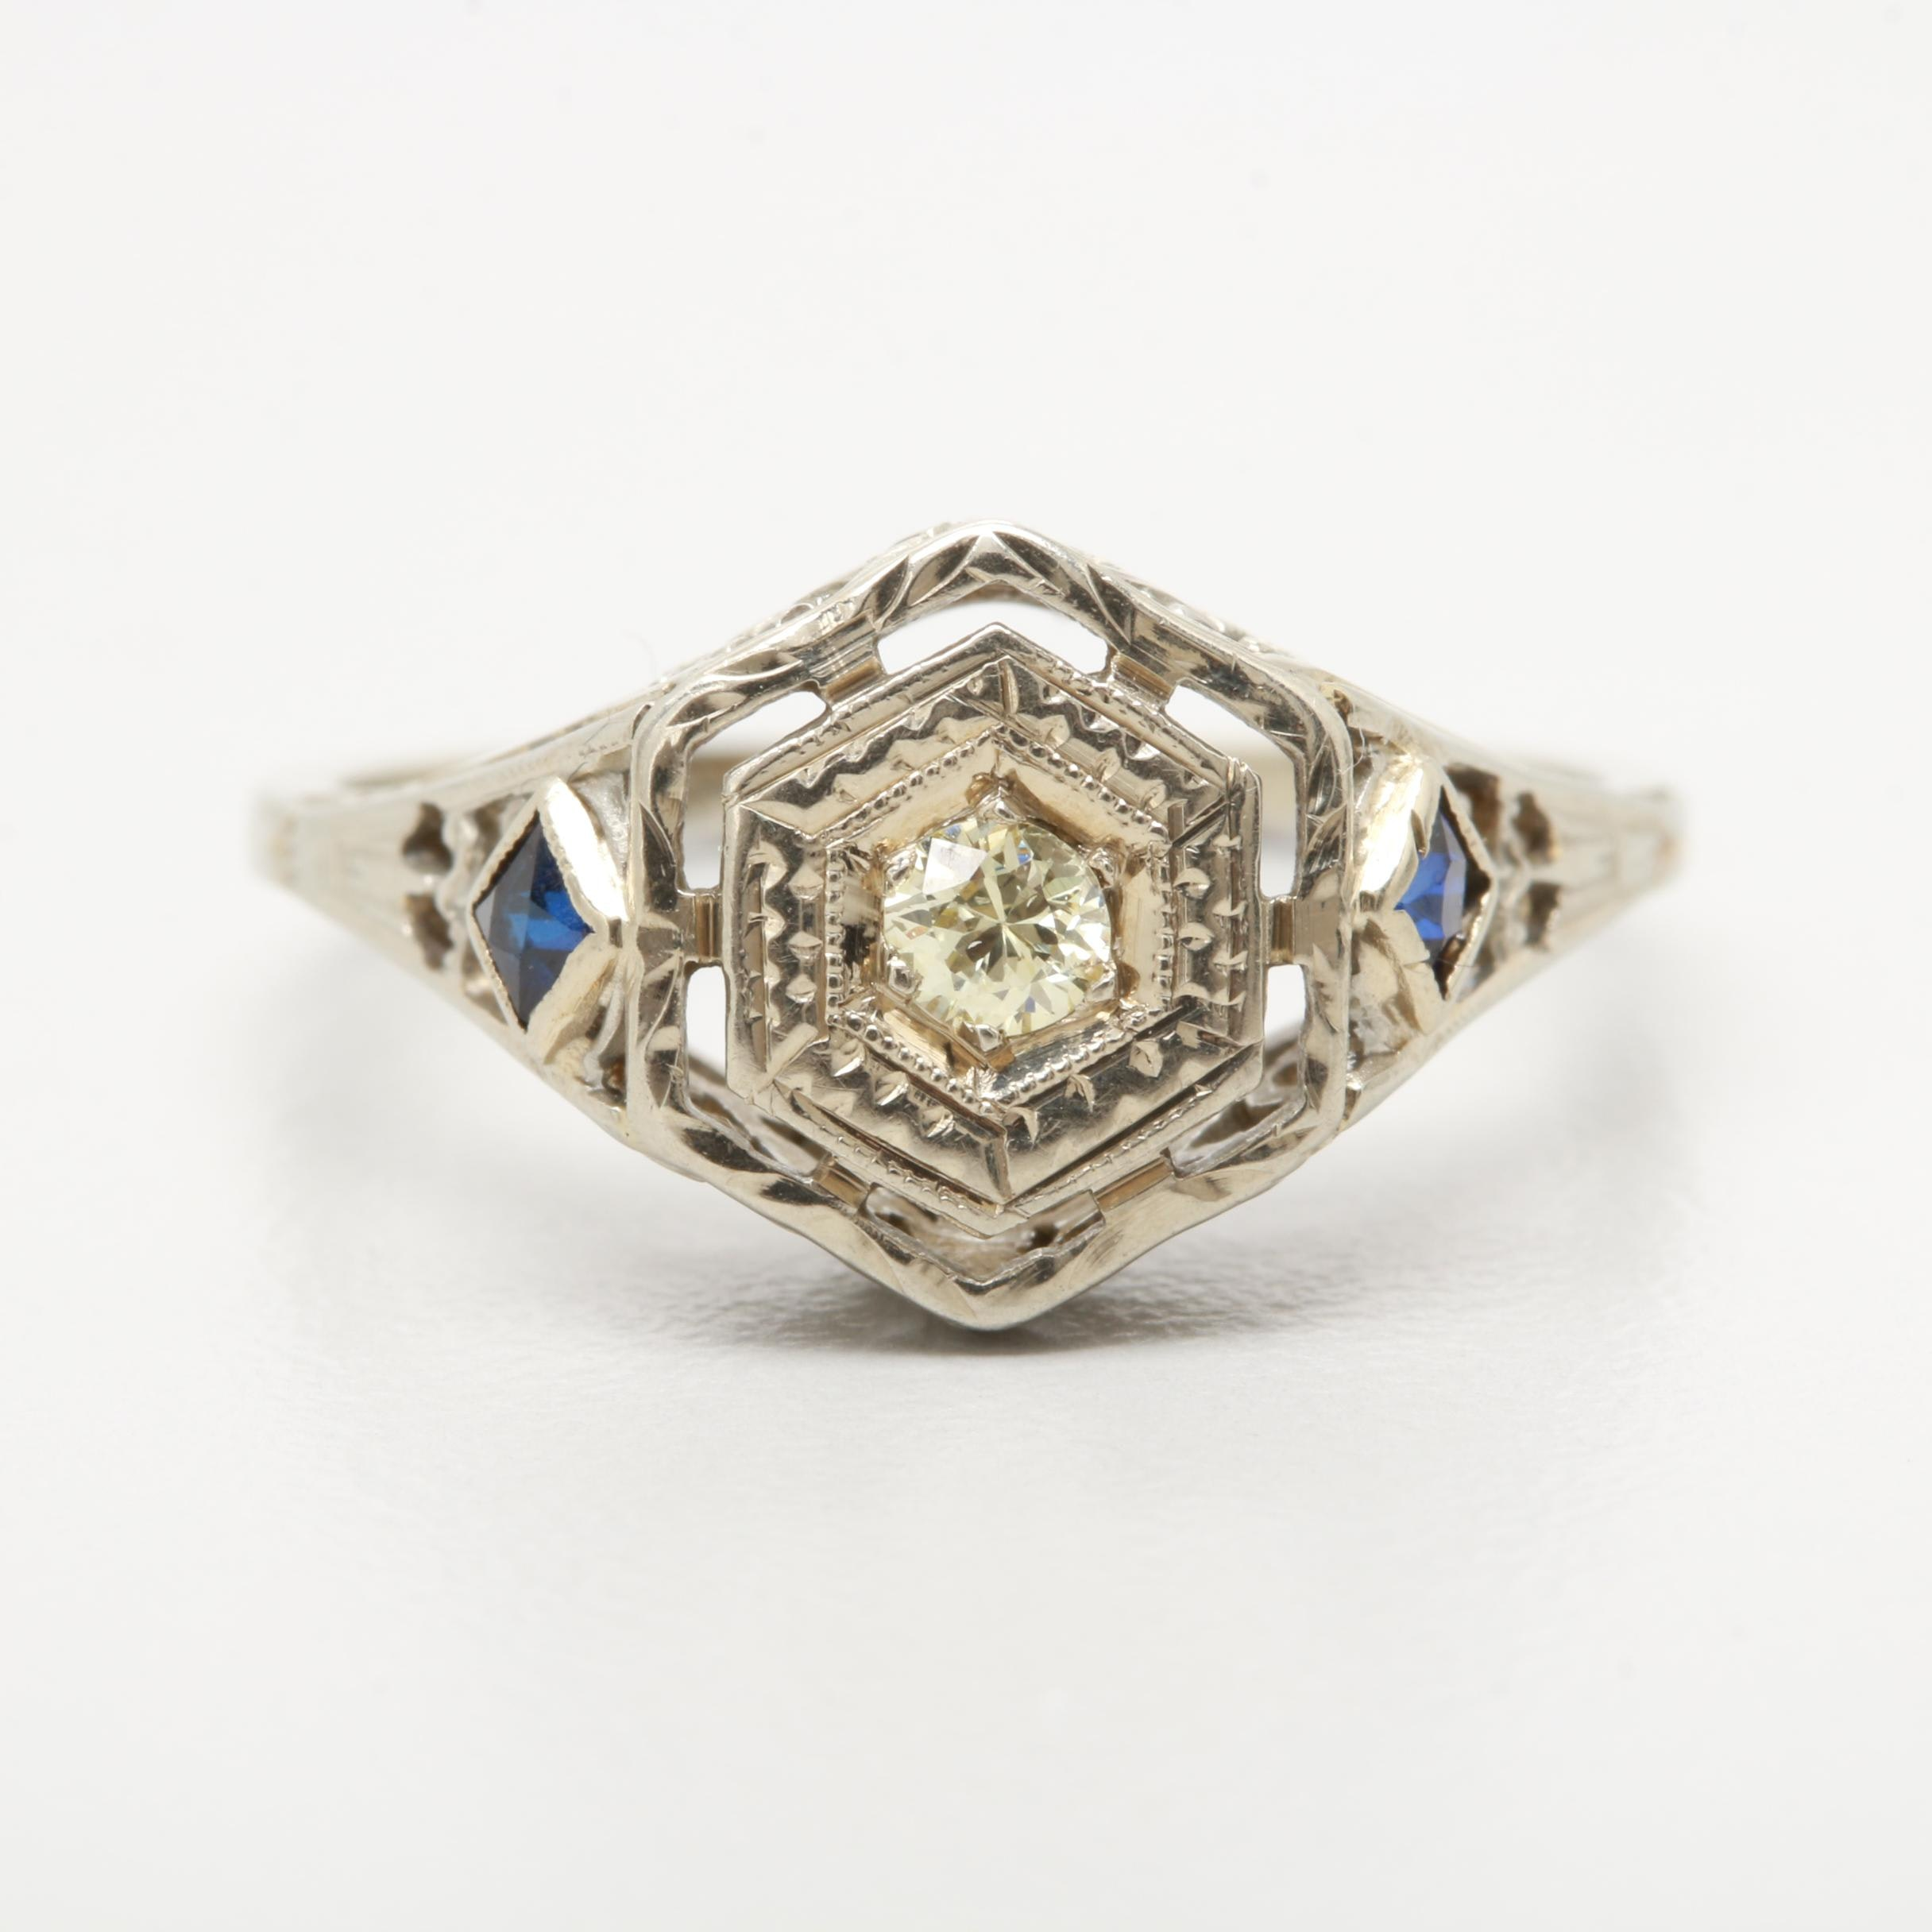 Belais Art Deco 18K White Gold Diamond and Synthetic Sapphire Filigree Ring